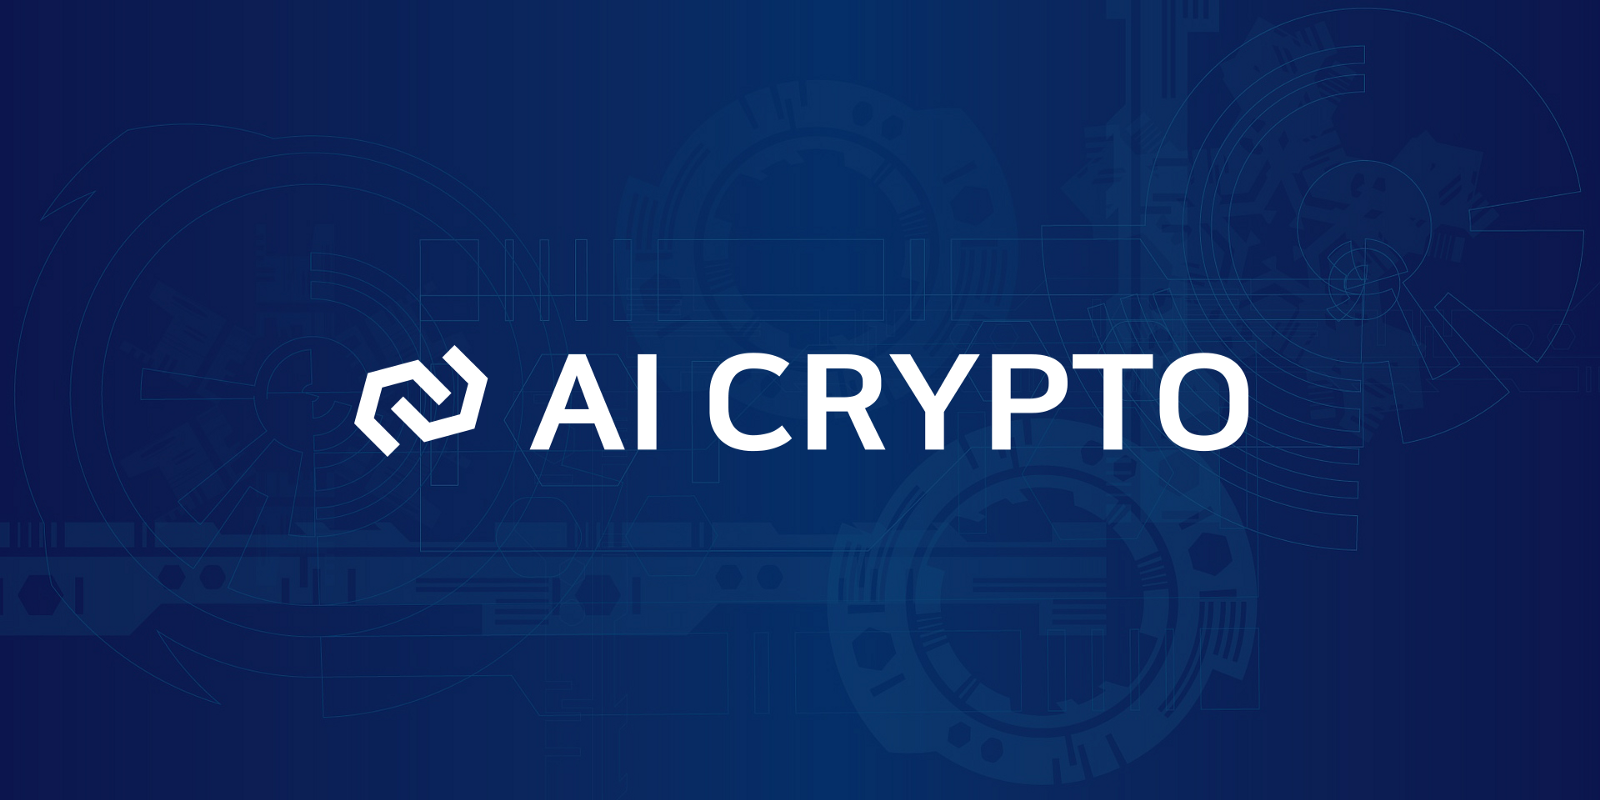 ai crypto increases awareness to strengthen its position in the ai